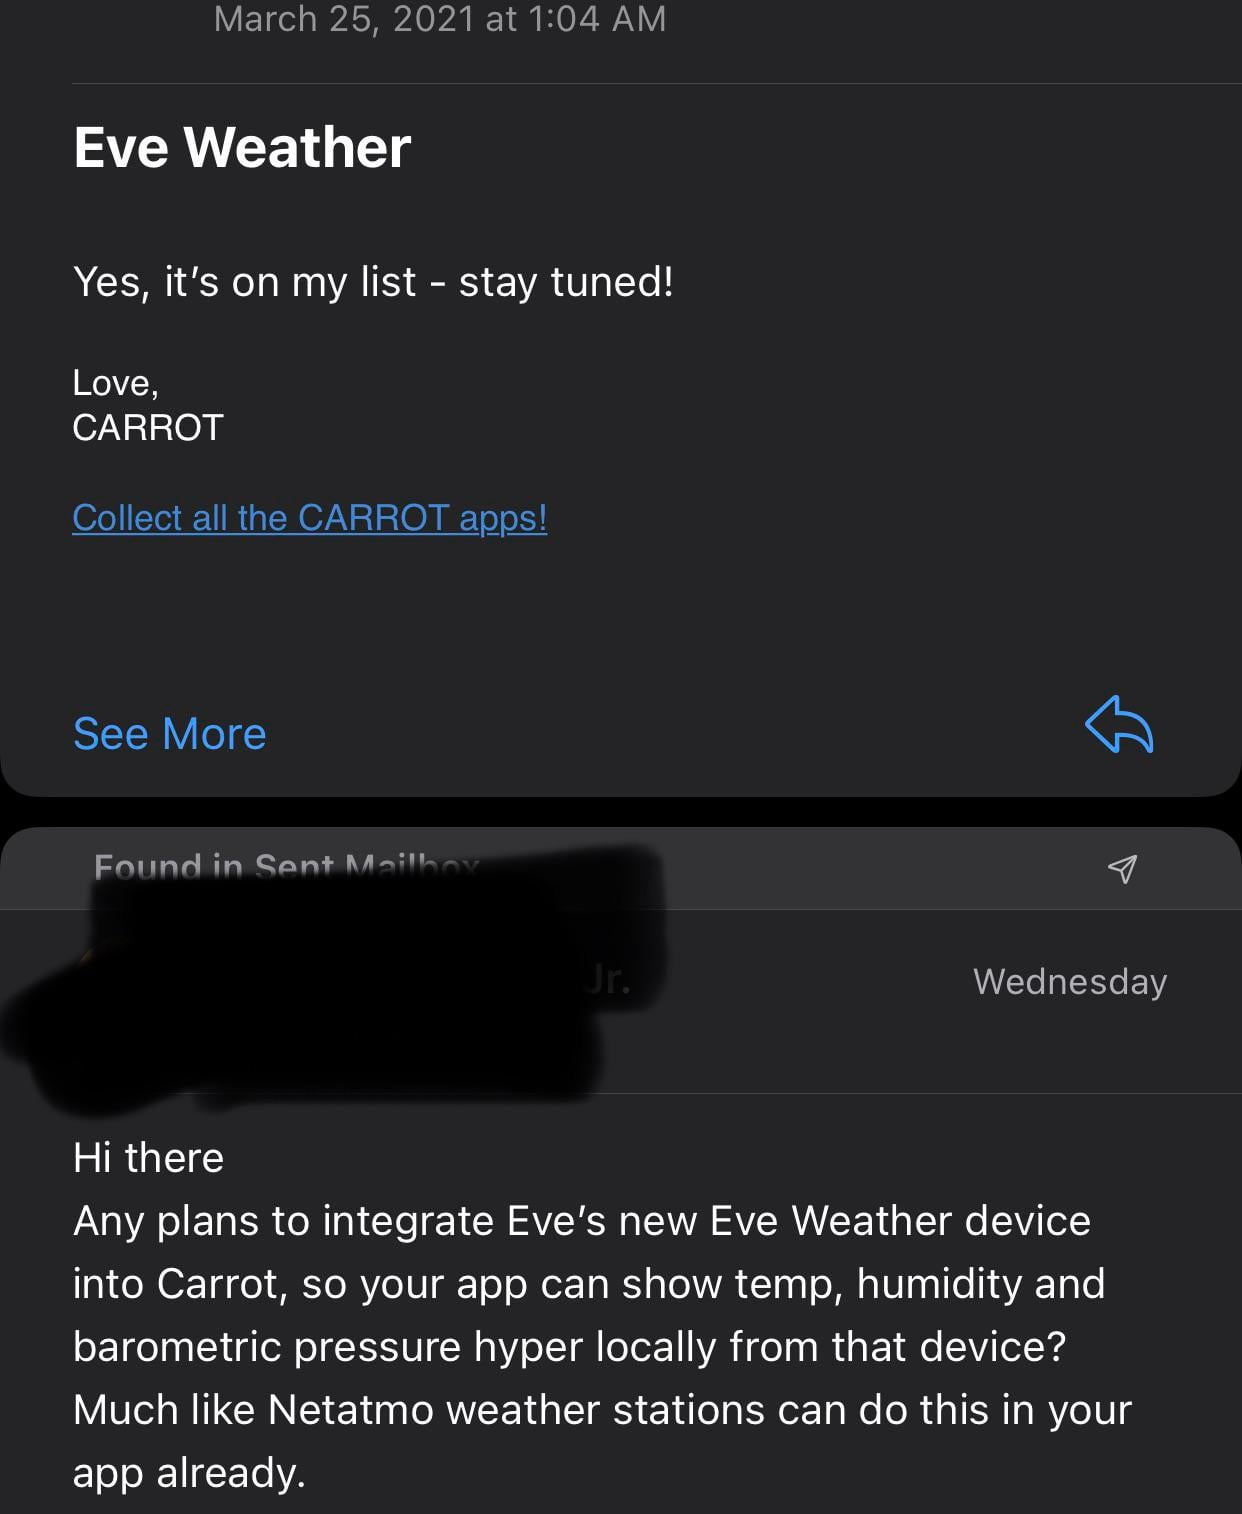 Coming soon Integrating carrot weather with the new Eve weather